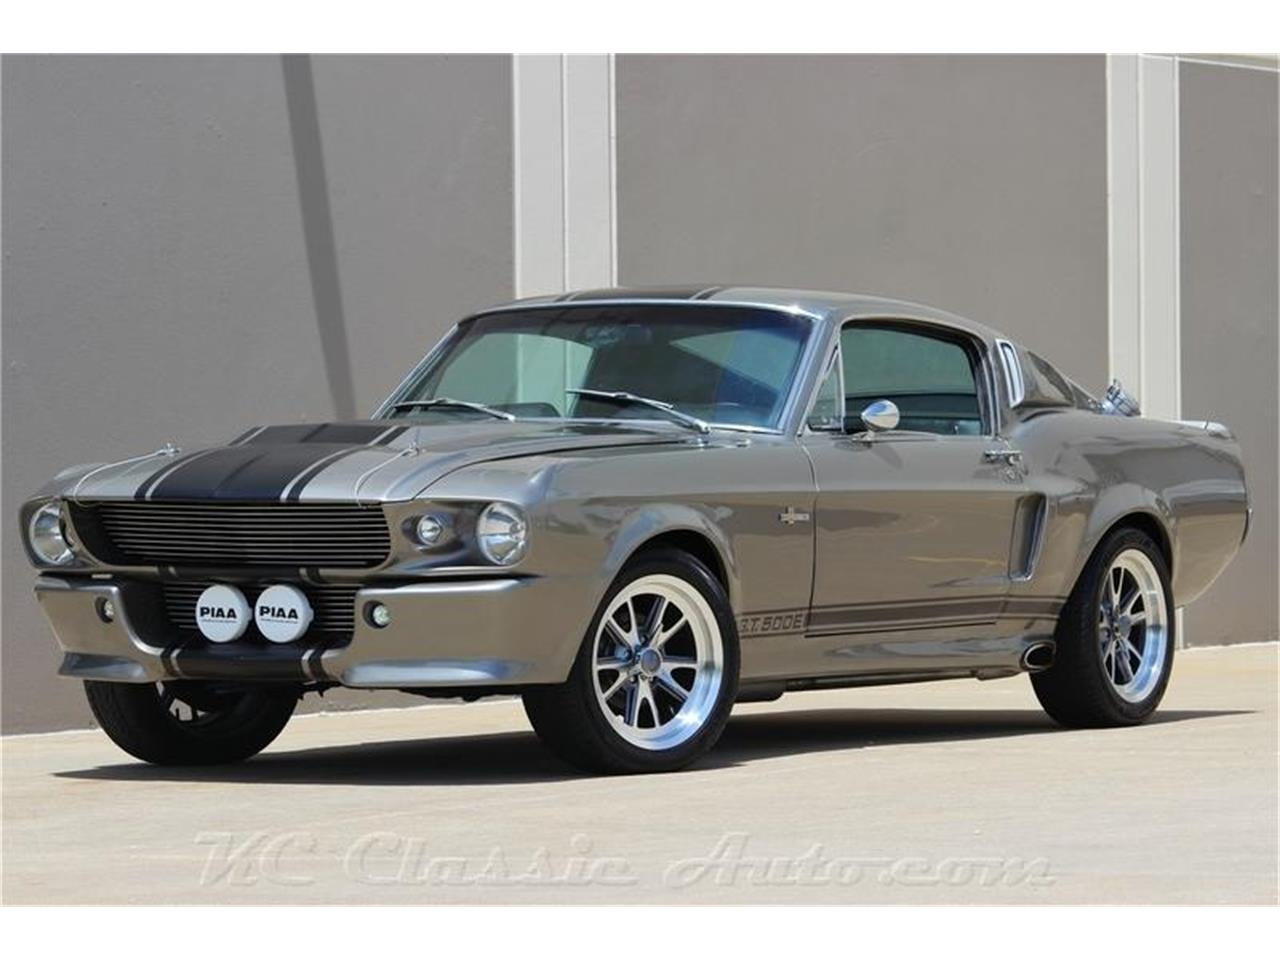 hight resolution of 68 shelby gt500 1968 ford shelby gt500 eleanor tribute 4 speed for sale